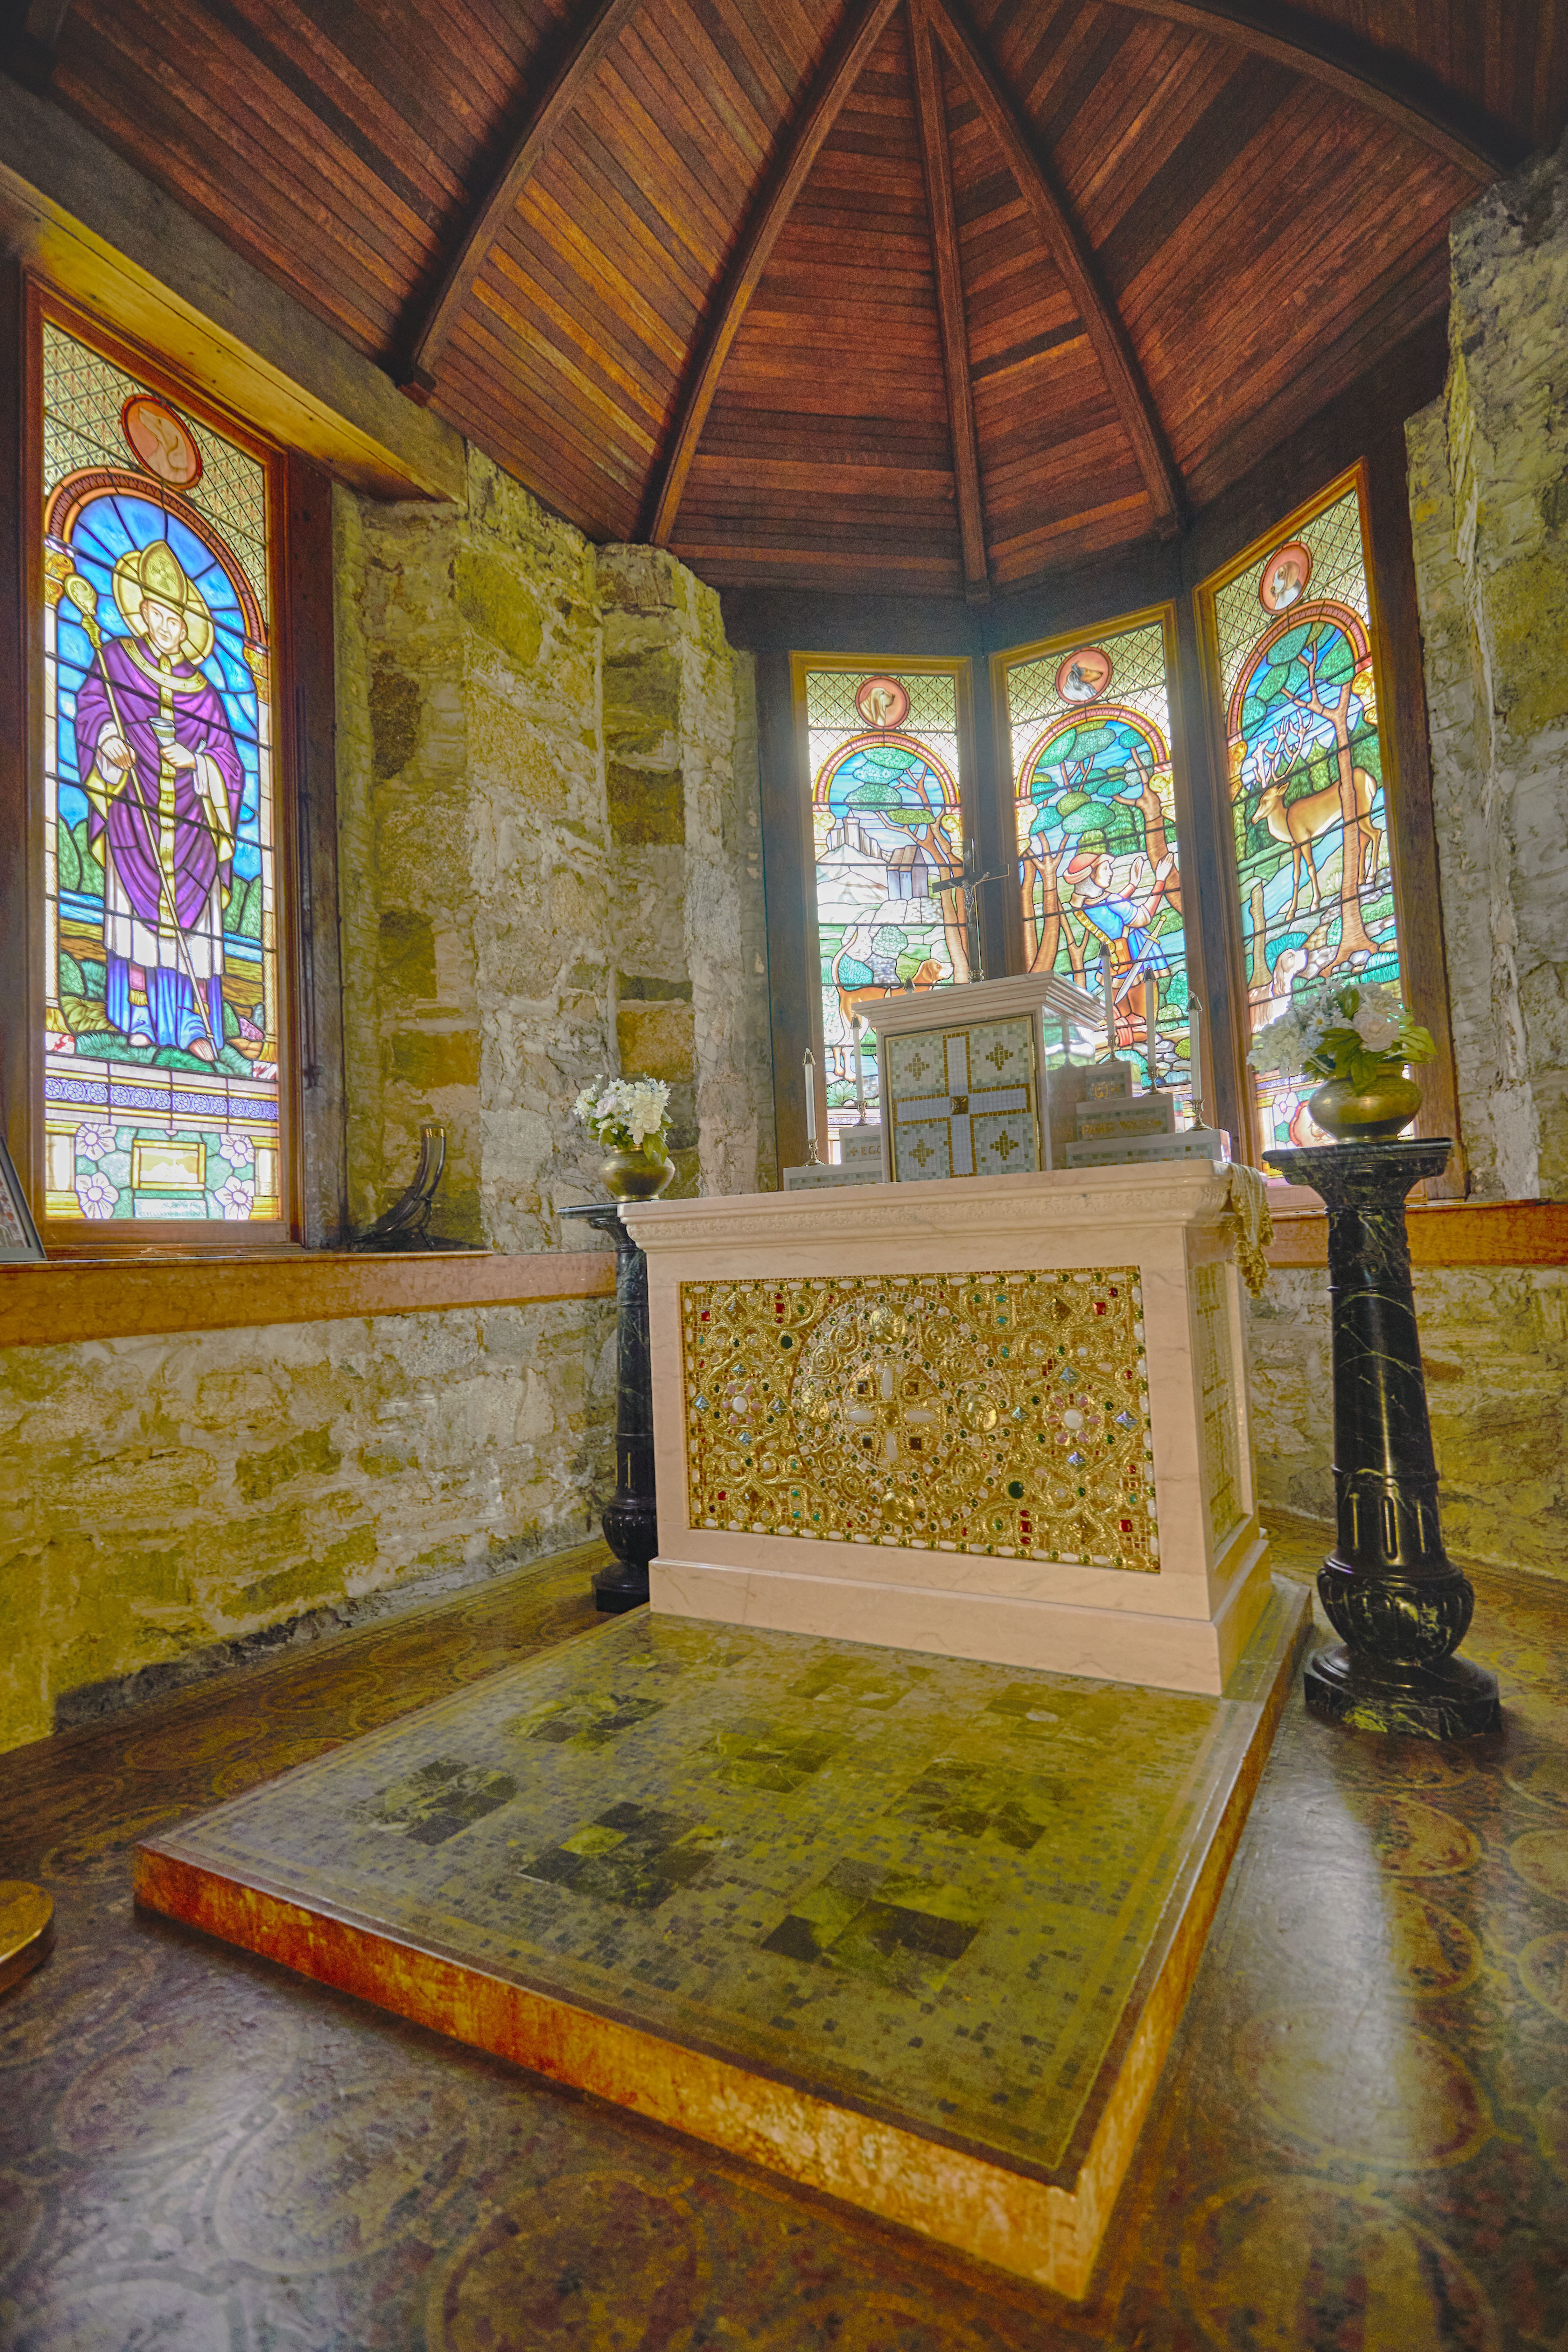 Altar and stained glass windows at front of church.